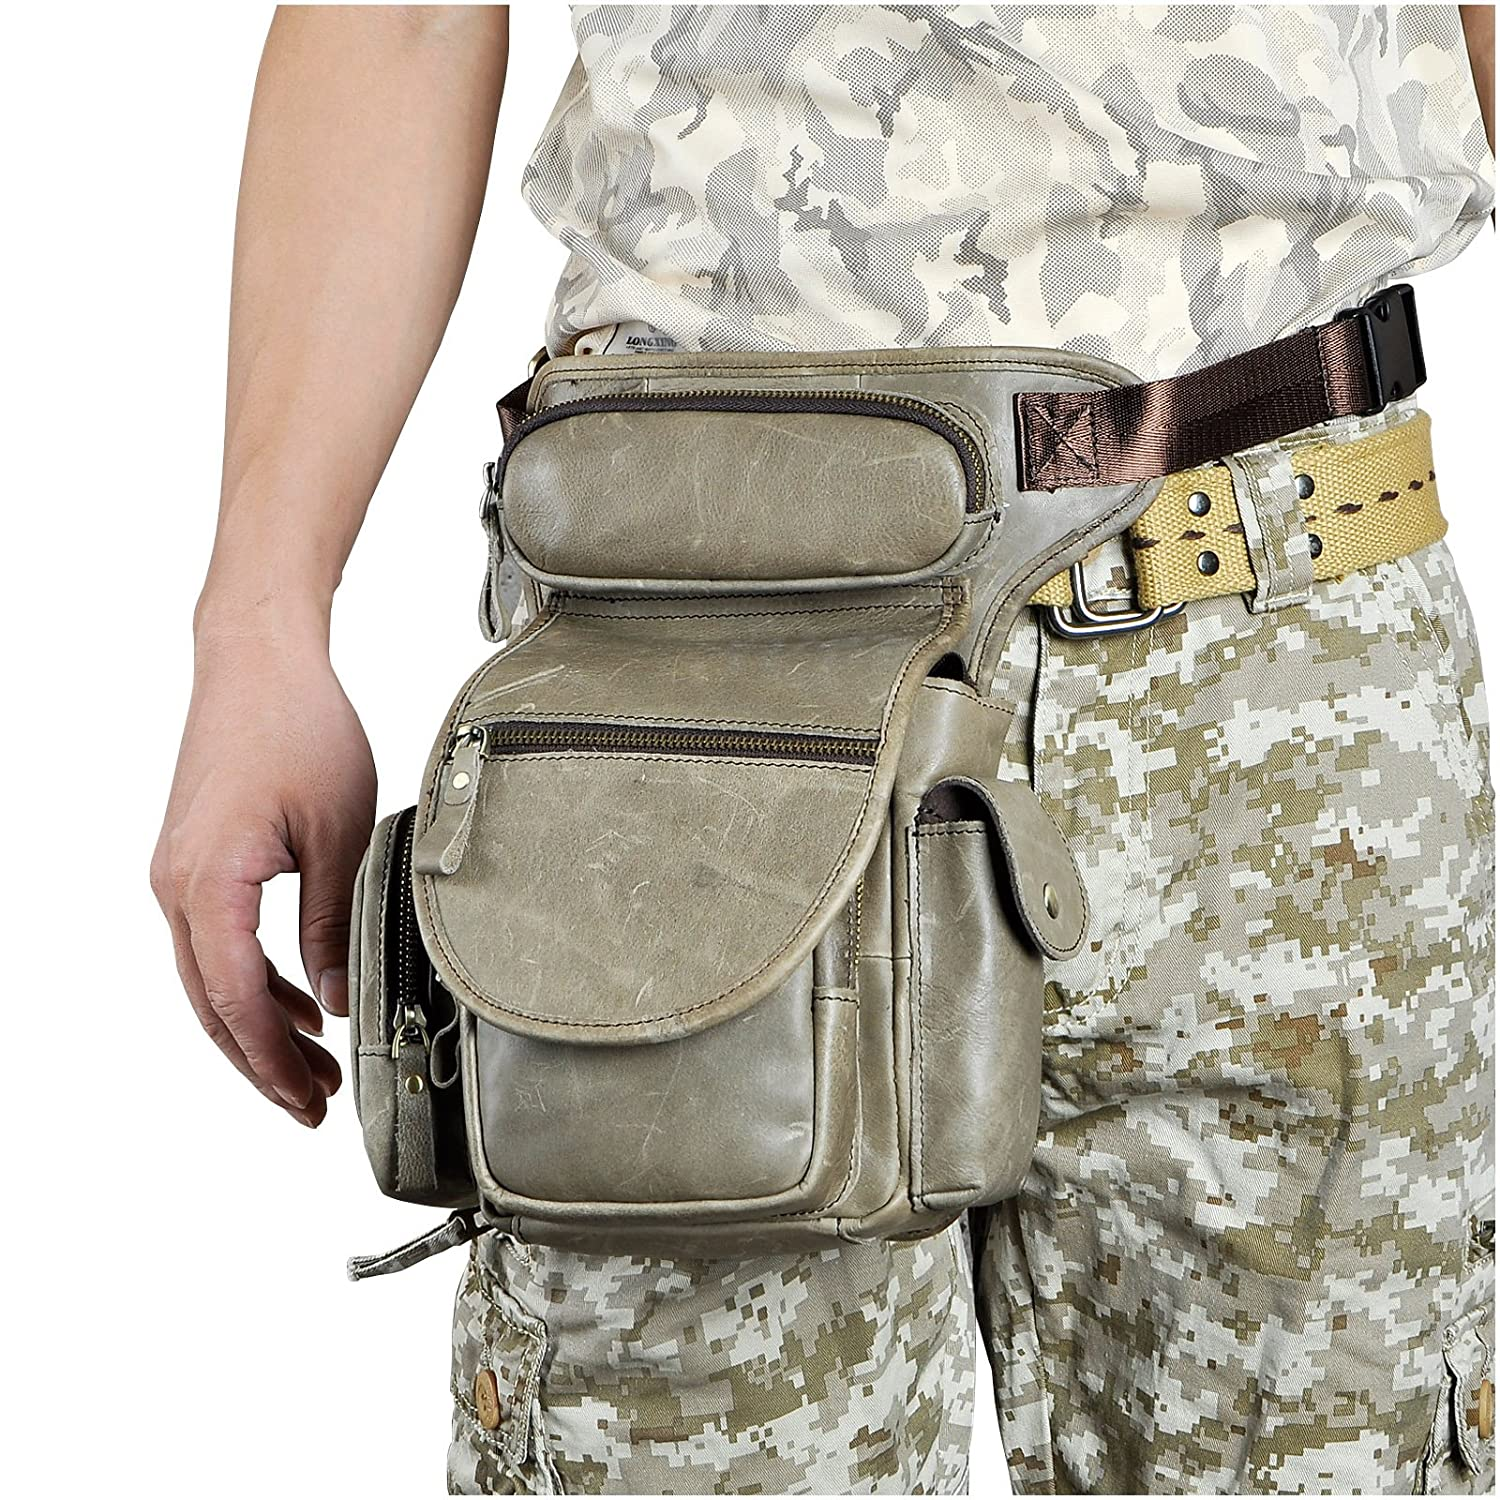 Leaokuu Mens Genuine Leather Climbing Cycling Belt Waist Bag Hip Bum Fanny Pack Drop Leg Bag 3110